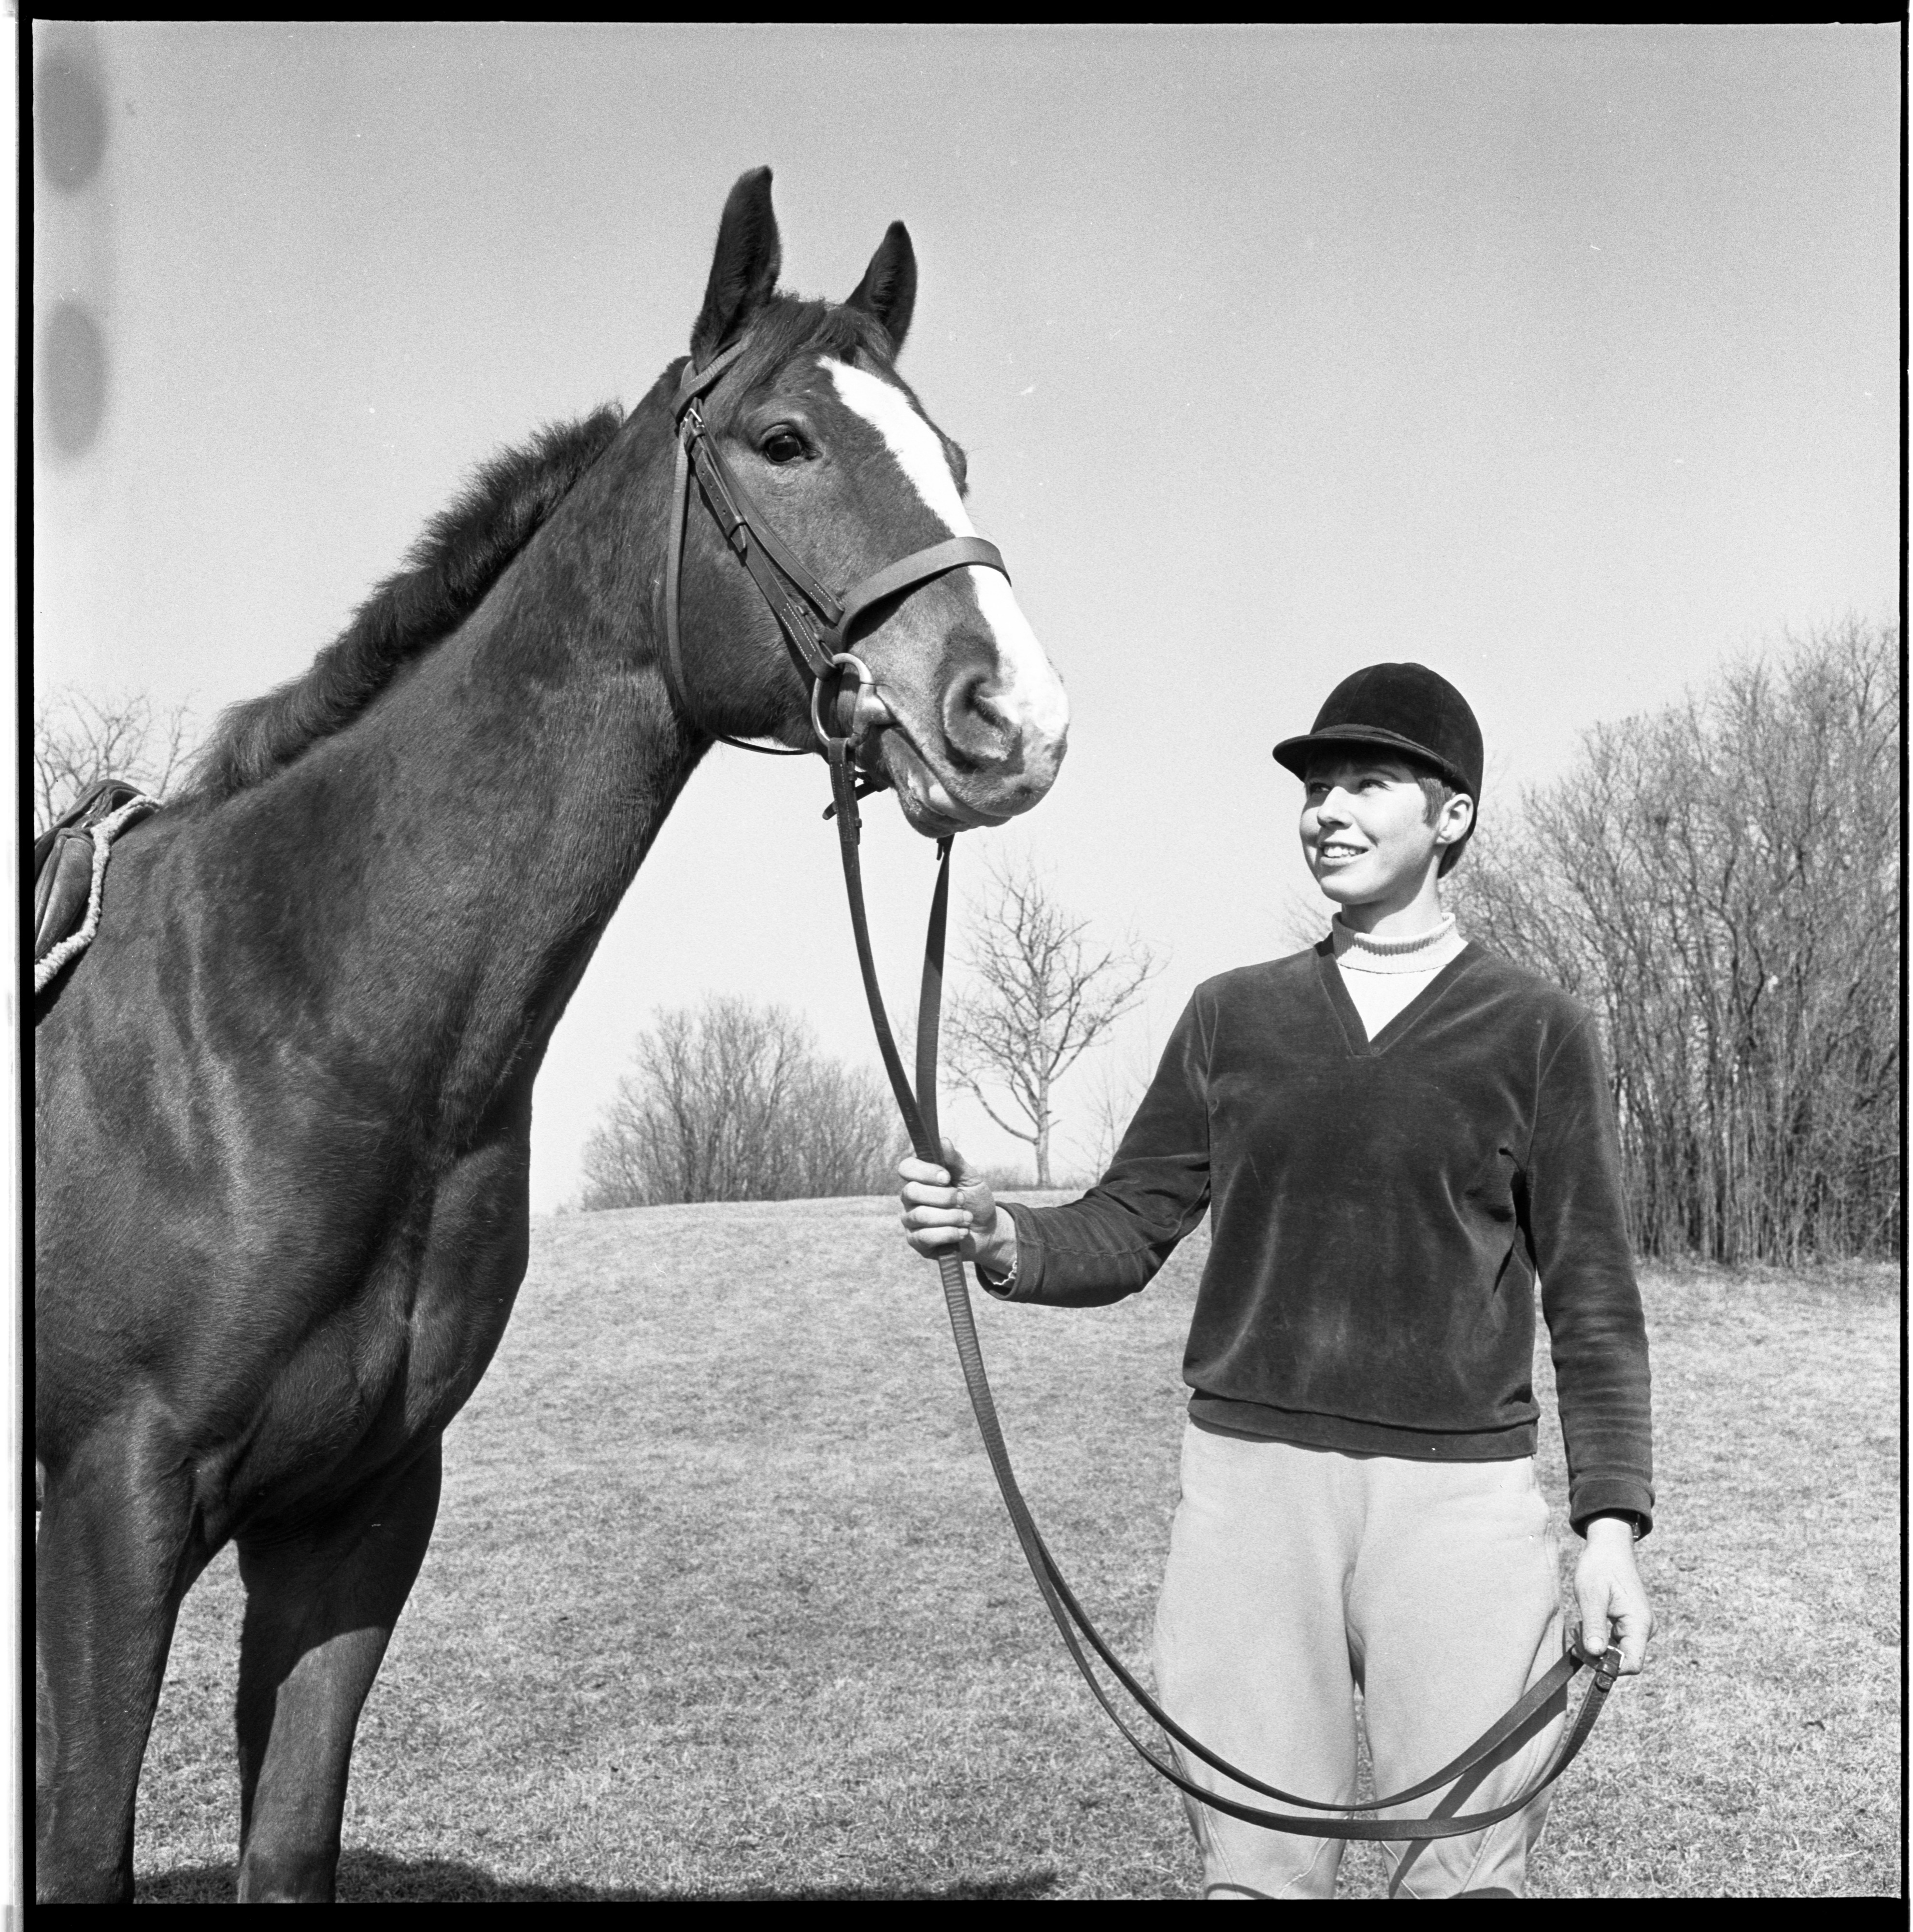 Cindy Carlson and Mr. Muskie - Everett Riding School, March 1969 image